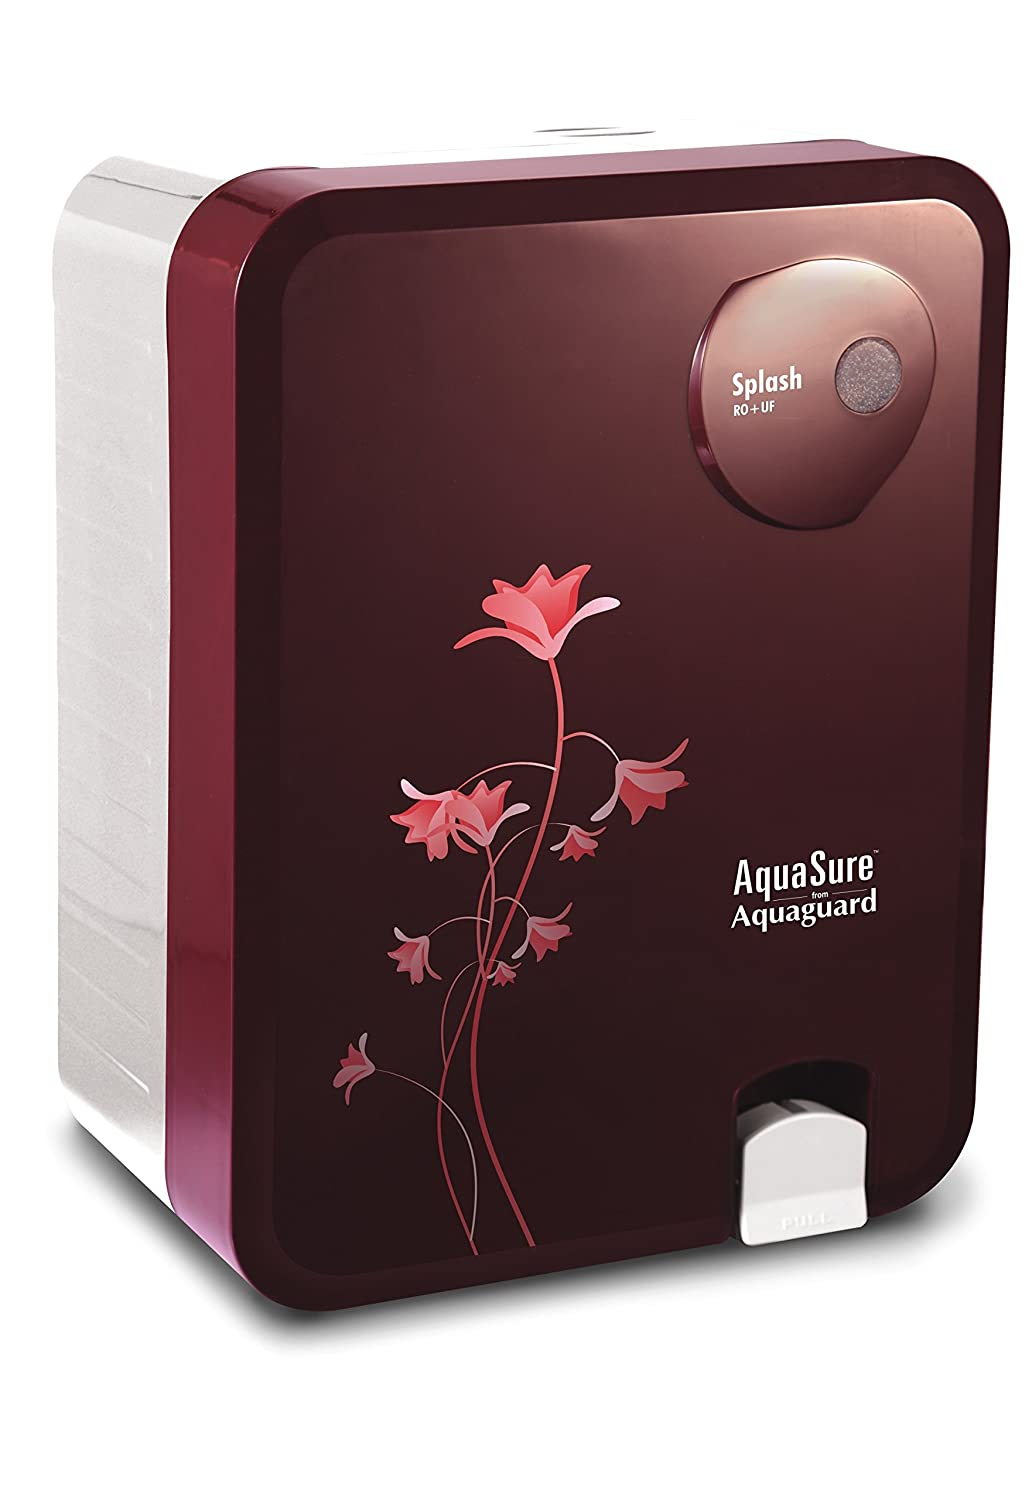 Eureka Forbes Aquasure From Aquaguard Splash RO+UF 6 Litres